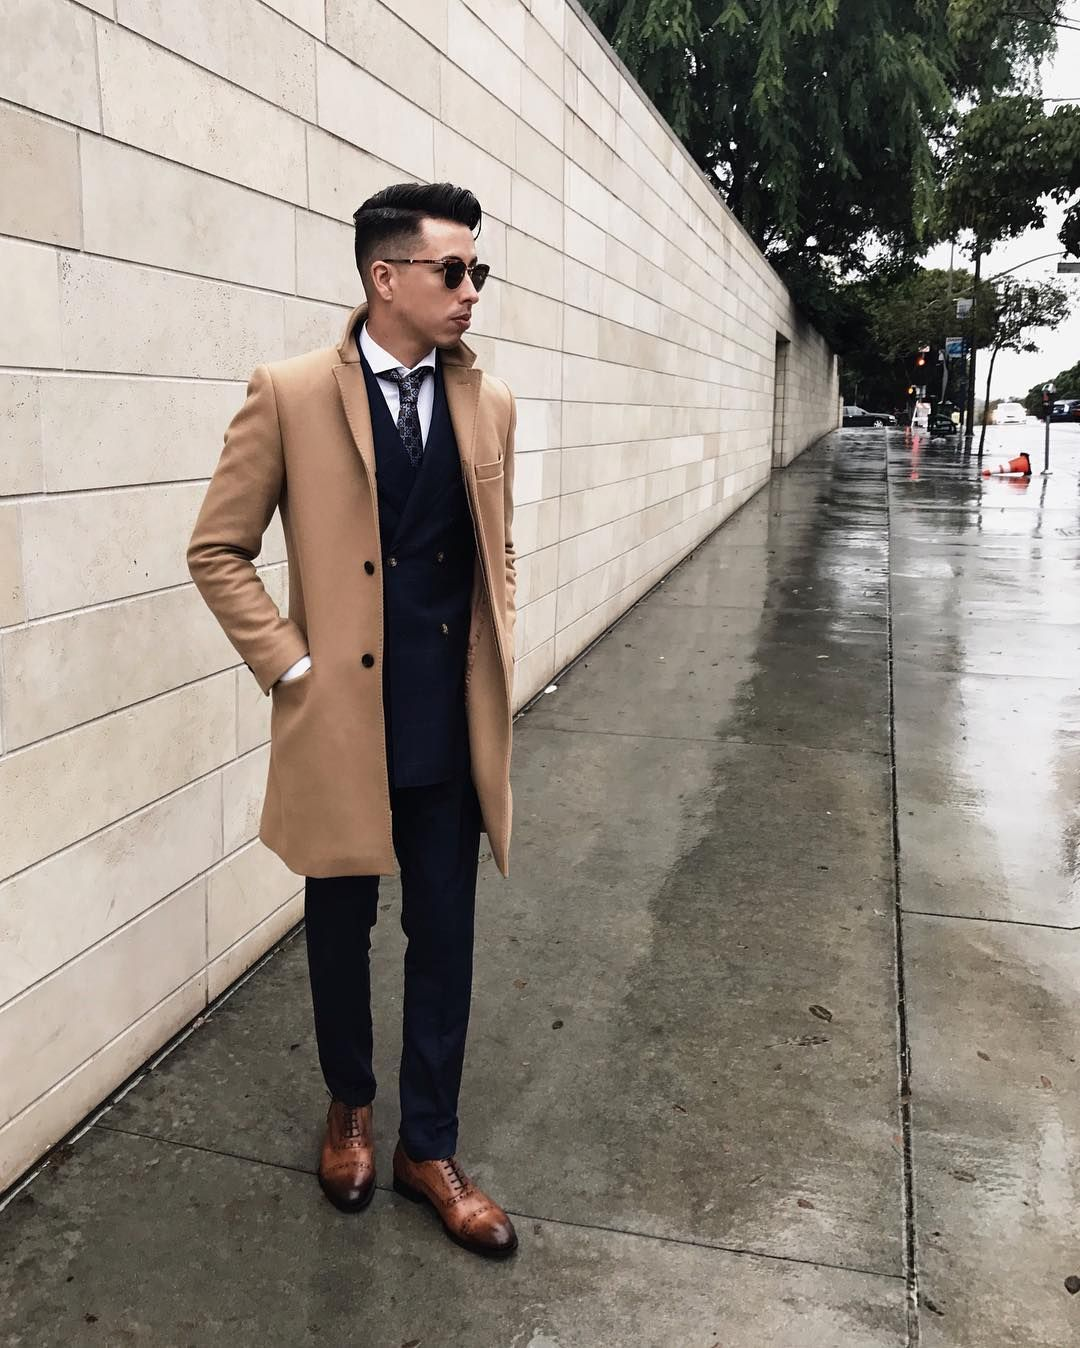 ec30cf47b56c perfect fit // menswear, mens, style, fashion, topcoat, camel, overcoat,  suit, oxfords, sunglasses, tie, haircut, hair, style, cut, holiday, winter,  ...